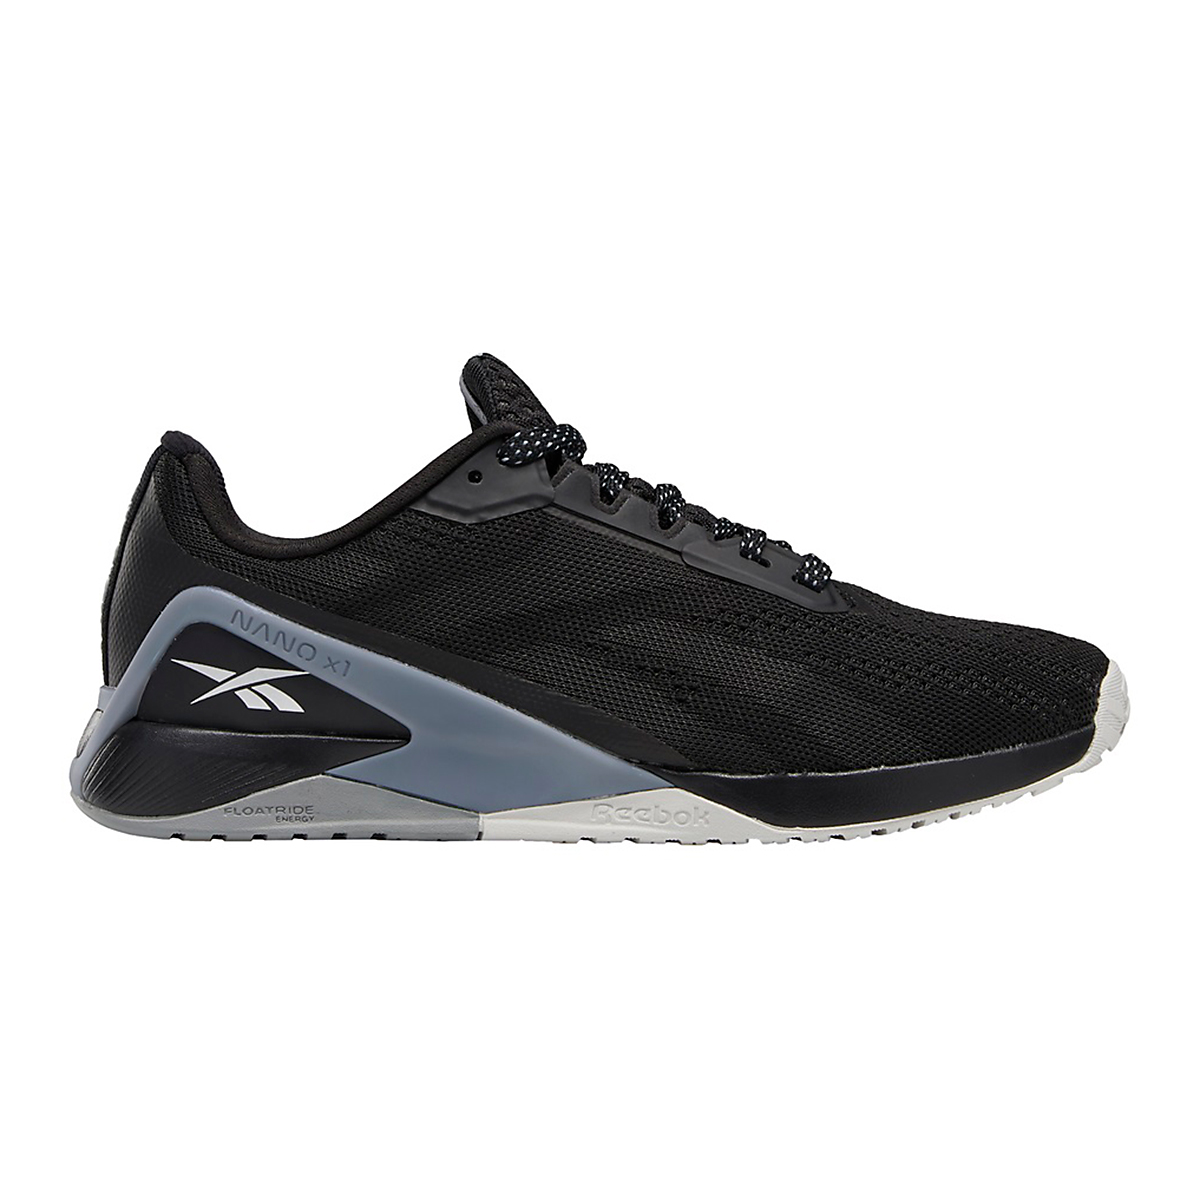 Women's Reebok Nano X1 Training Shoe - Color: Black/Cool Shadow/Cold Grey - Size: 5 - Width: Regular, Black/Cool Shadow/Cold Grey, large, image 1